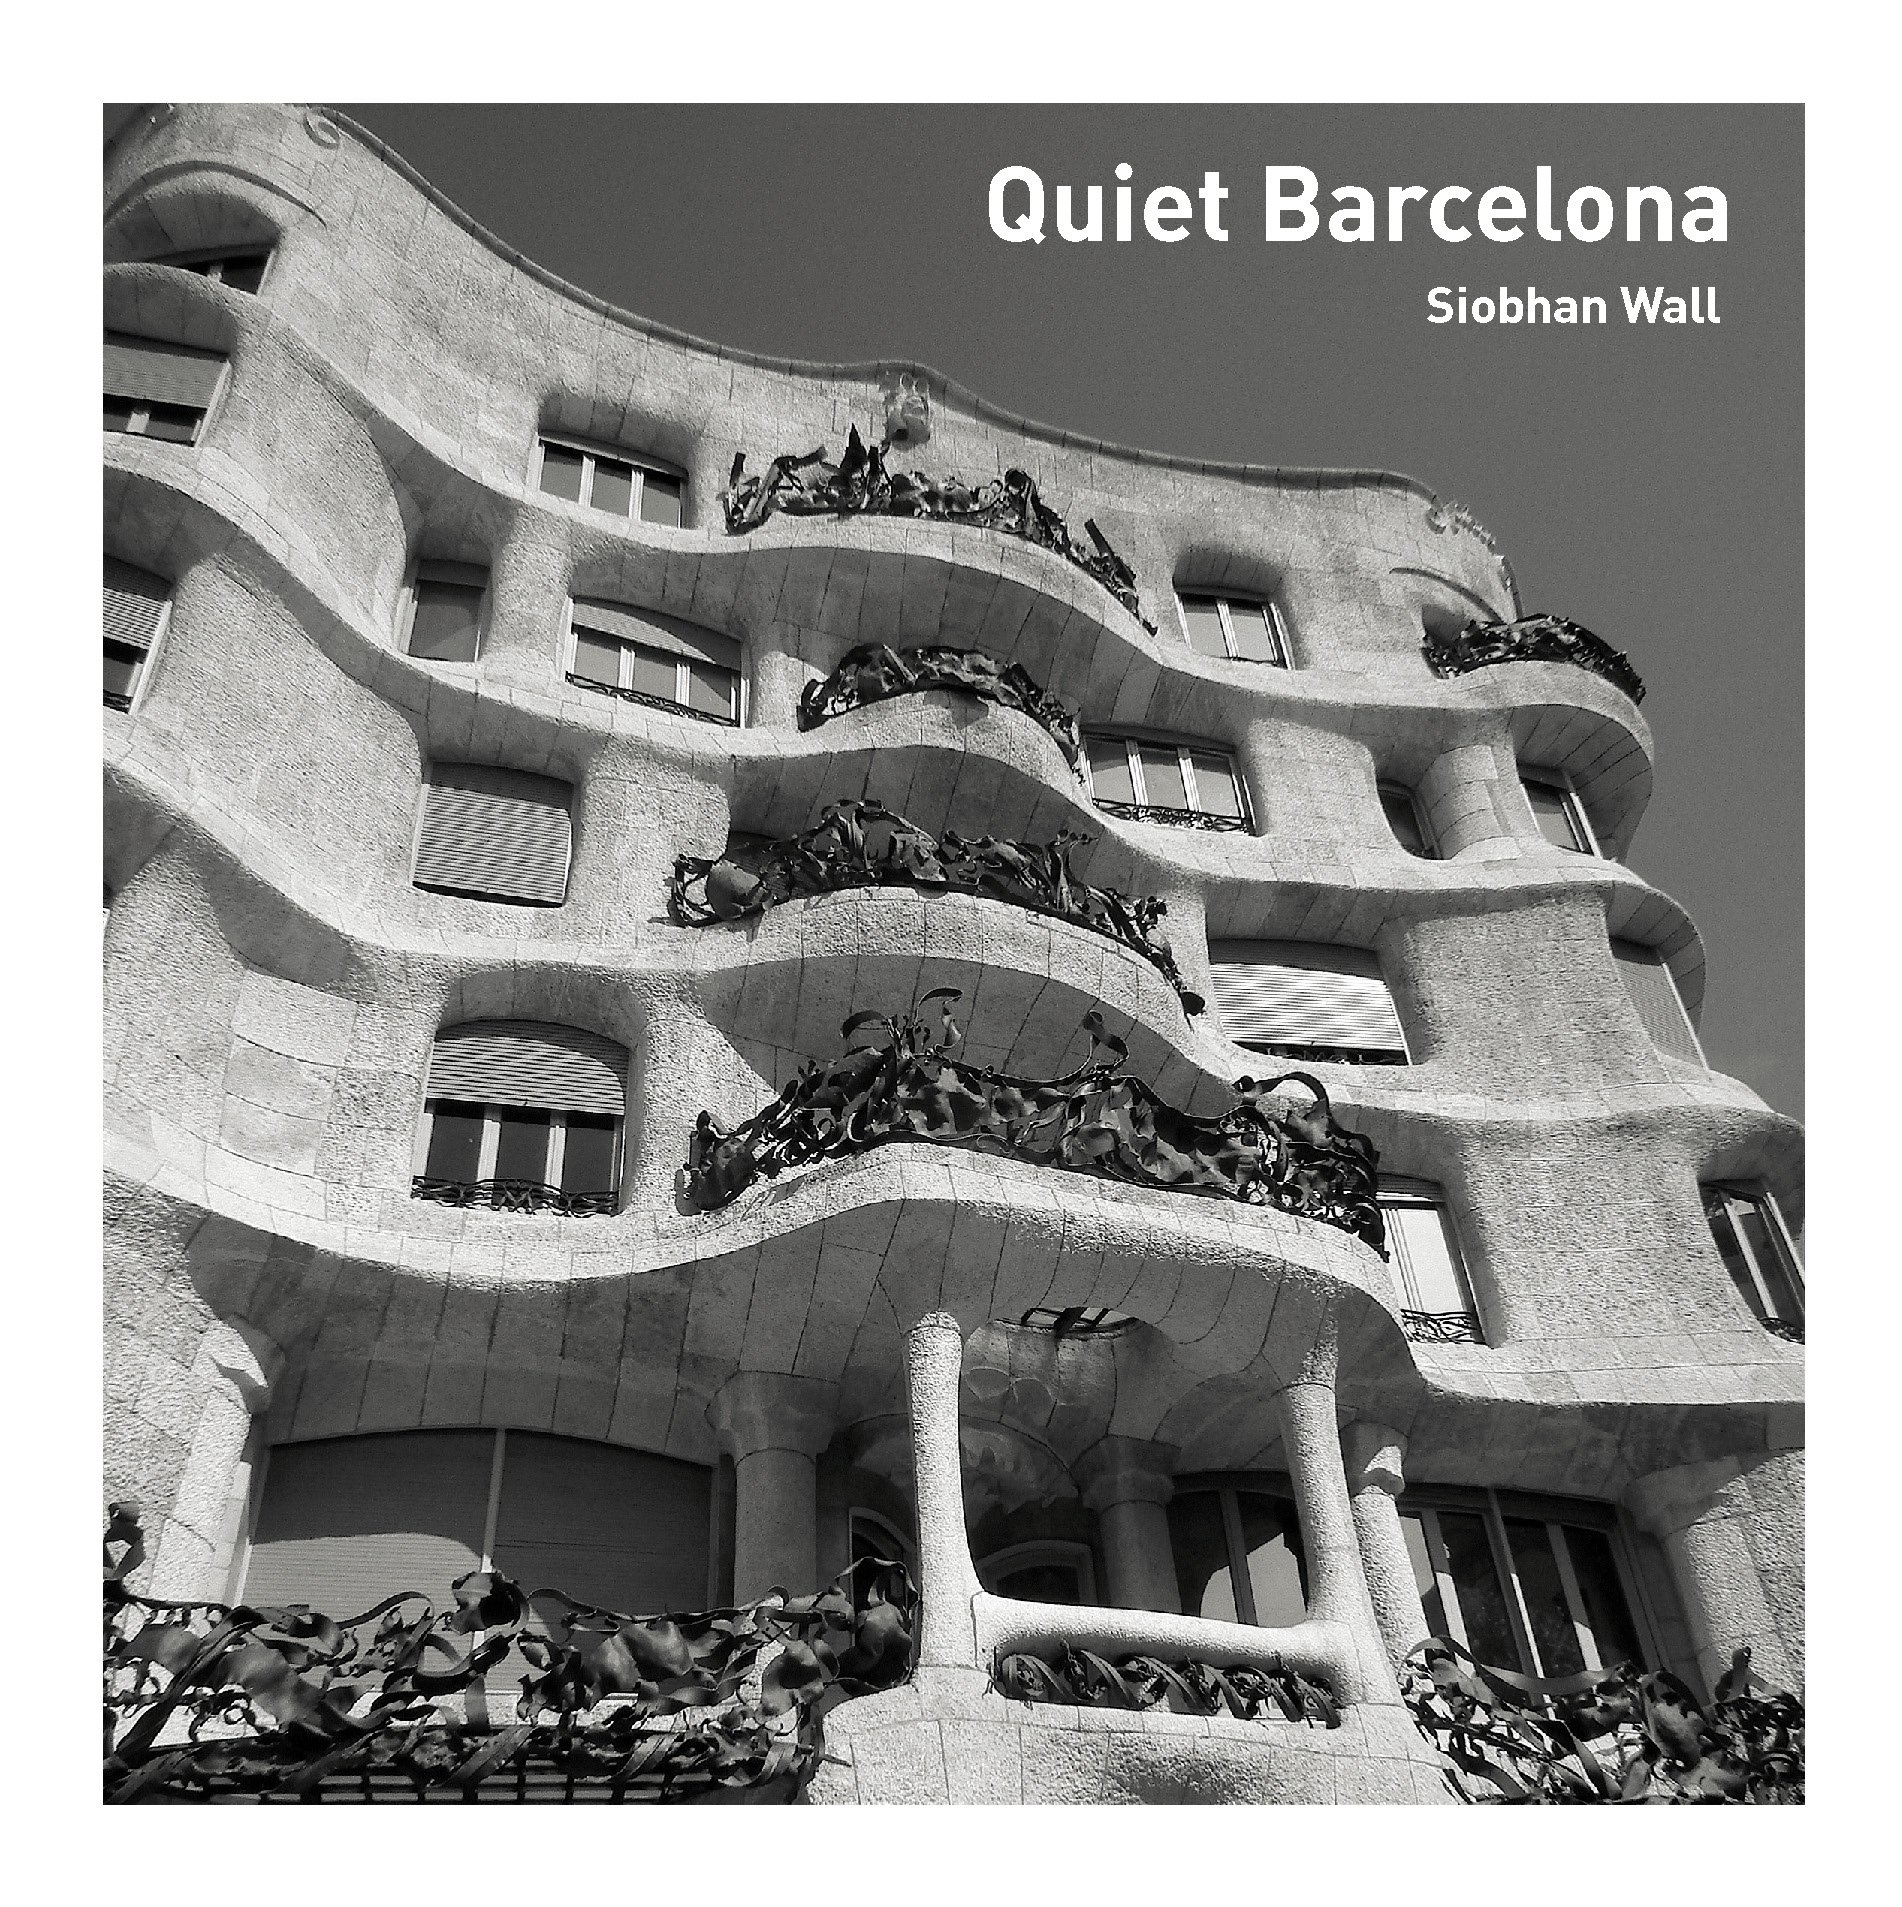 Quiet Barcelona: Siobhan Wall, Cristina Peralta: 9780711238121: Amazon.com: Books